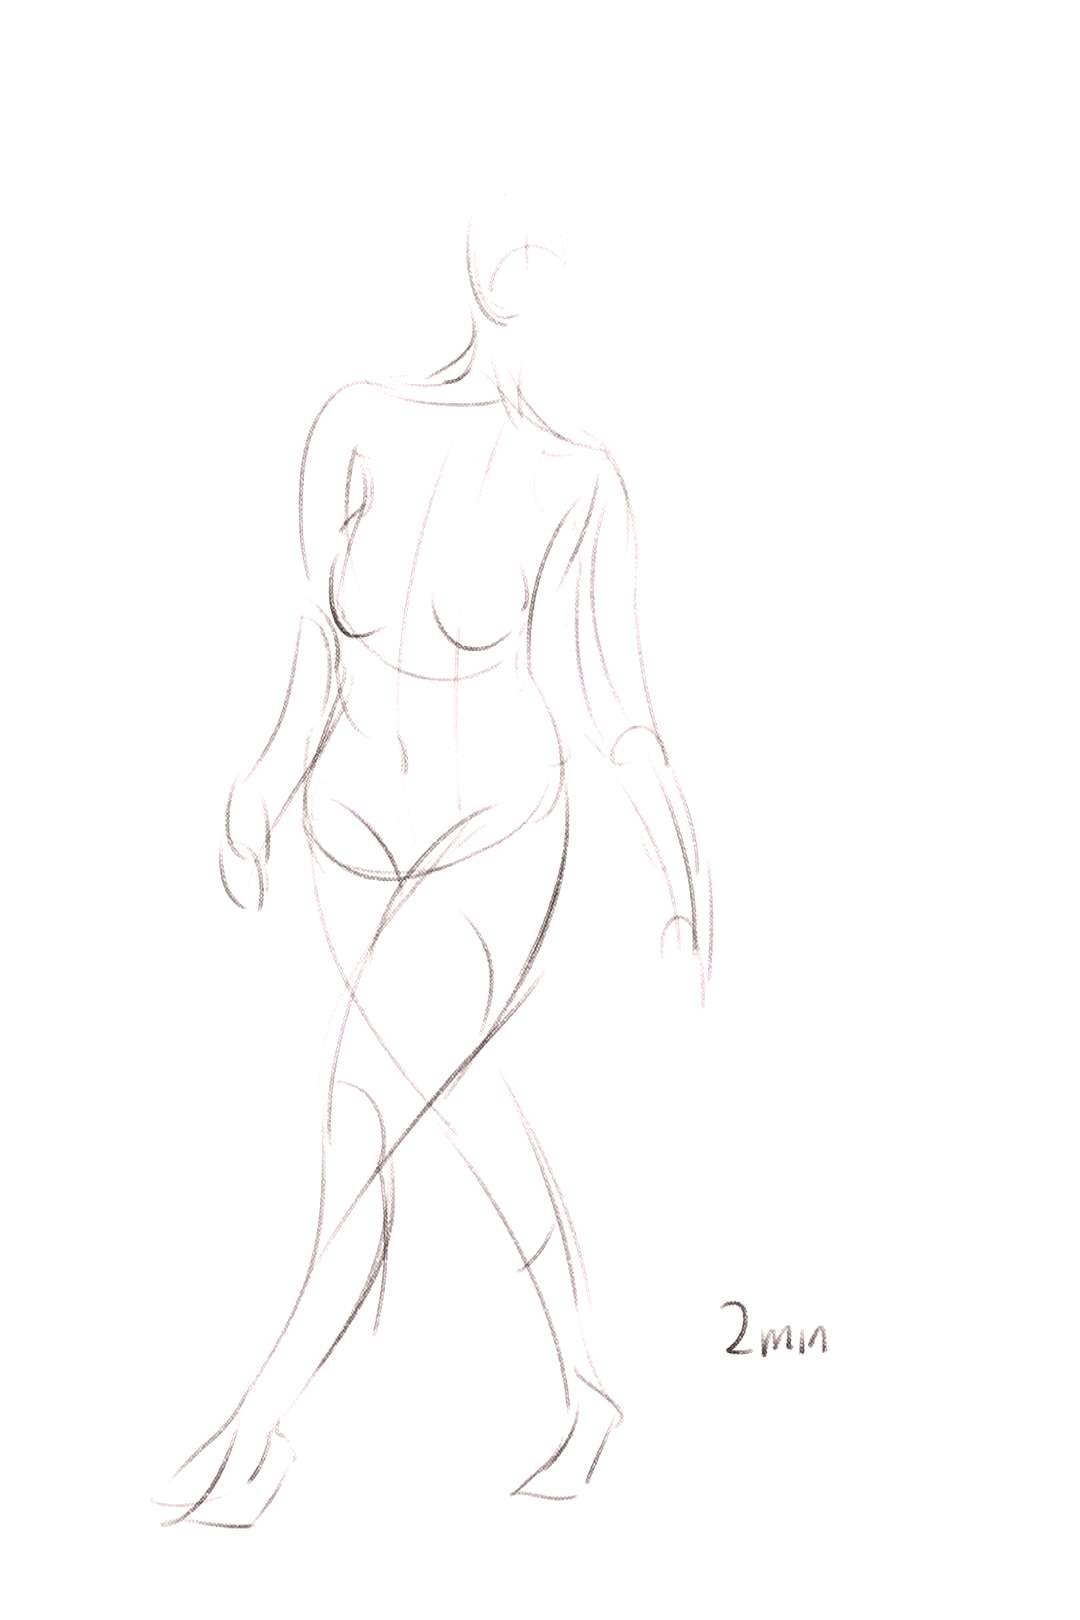 #figuary #figuary2020 #figuaryday22 #croquiscafe #sketch #figured